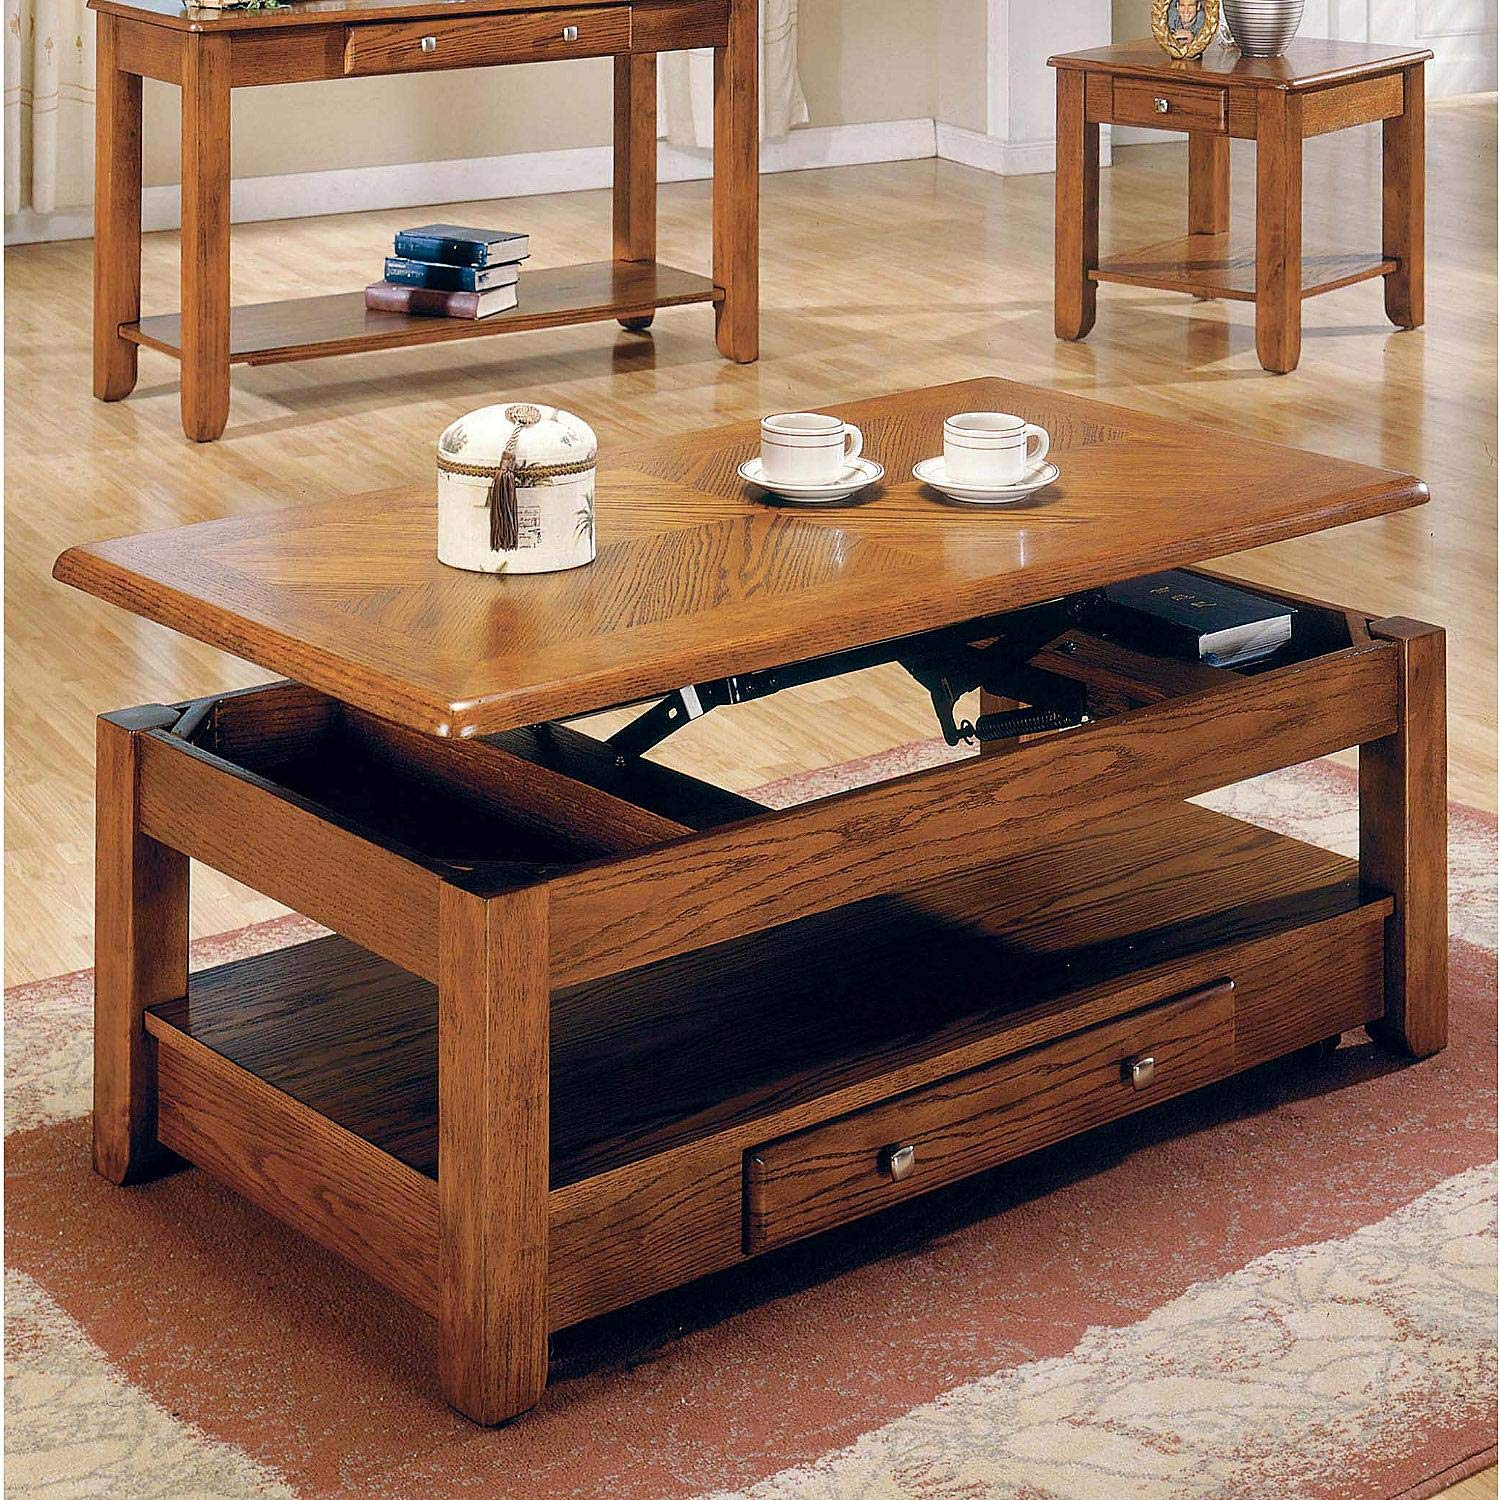 LIFT TOP Coffee Table Oak with Storage Drawers and Bottom Shelf